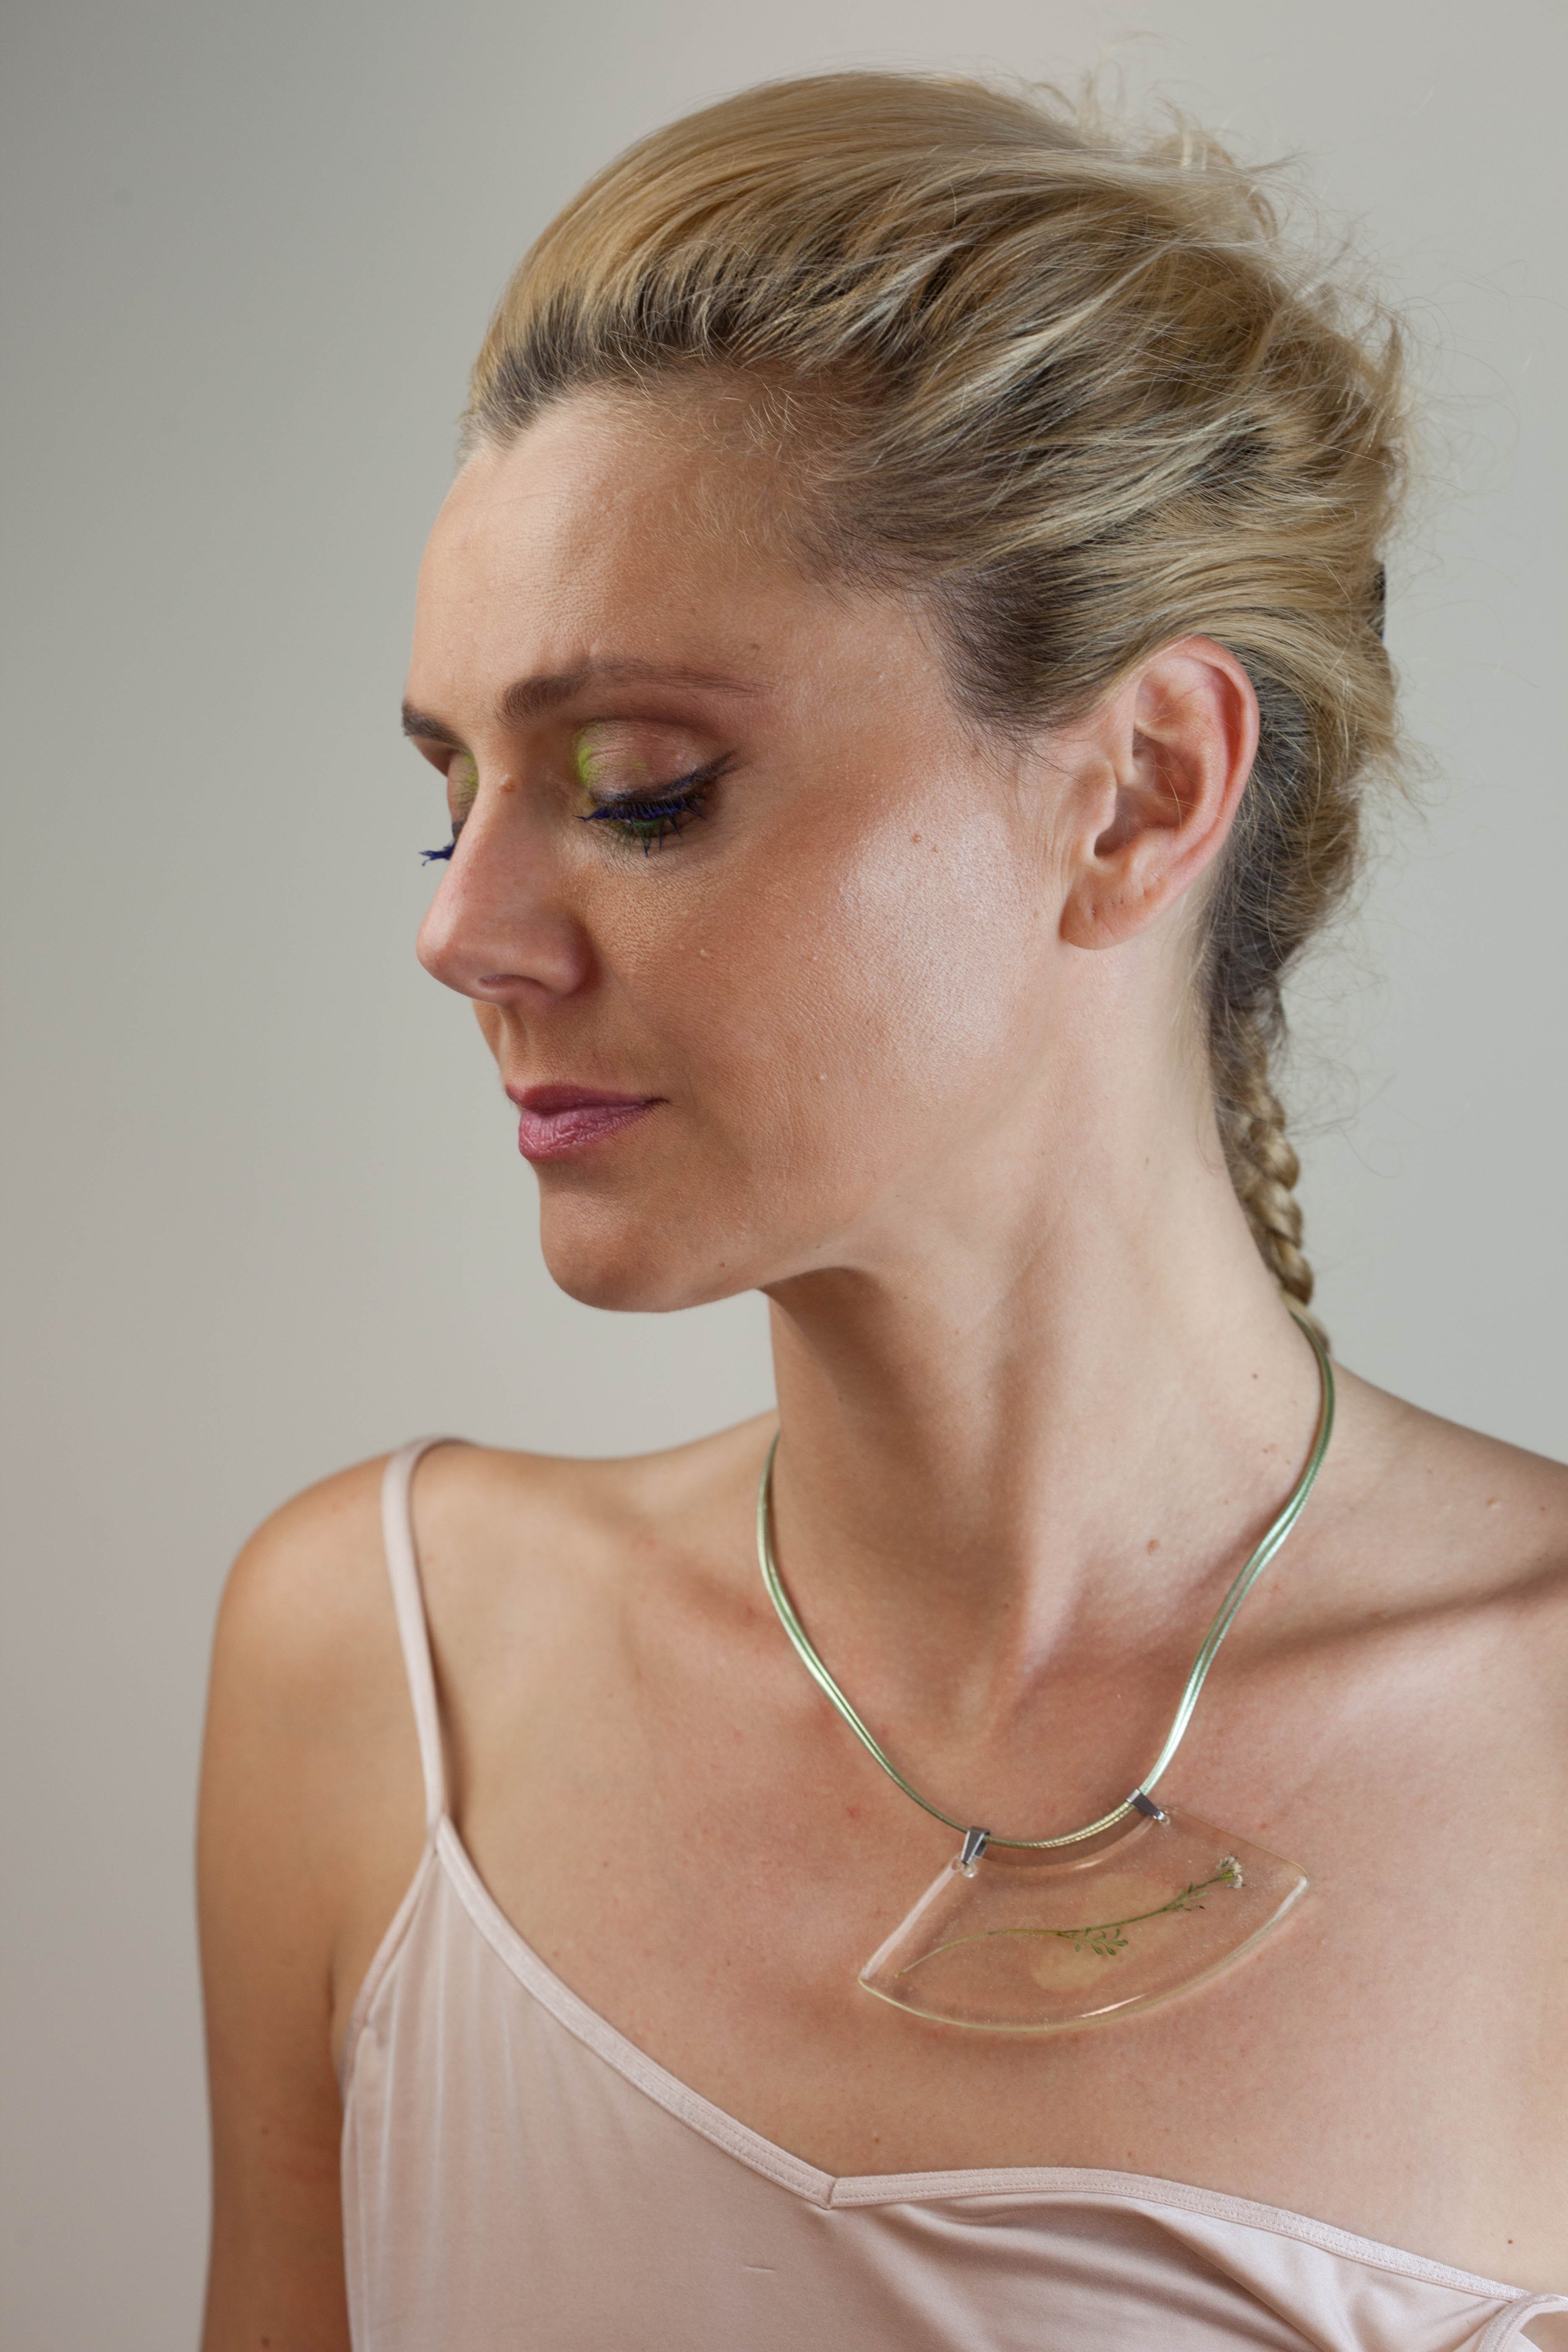 Woman in White Top and Gold-colored Necklace